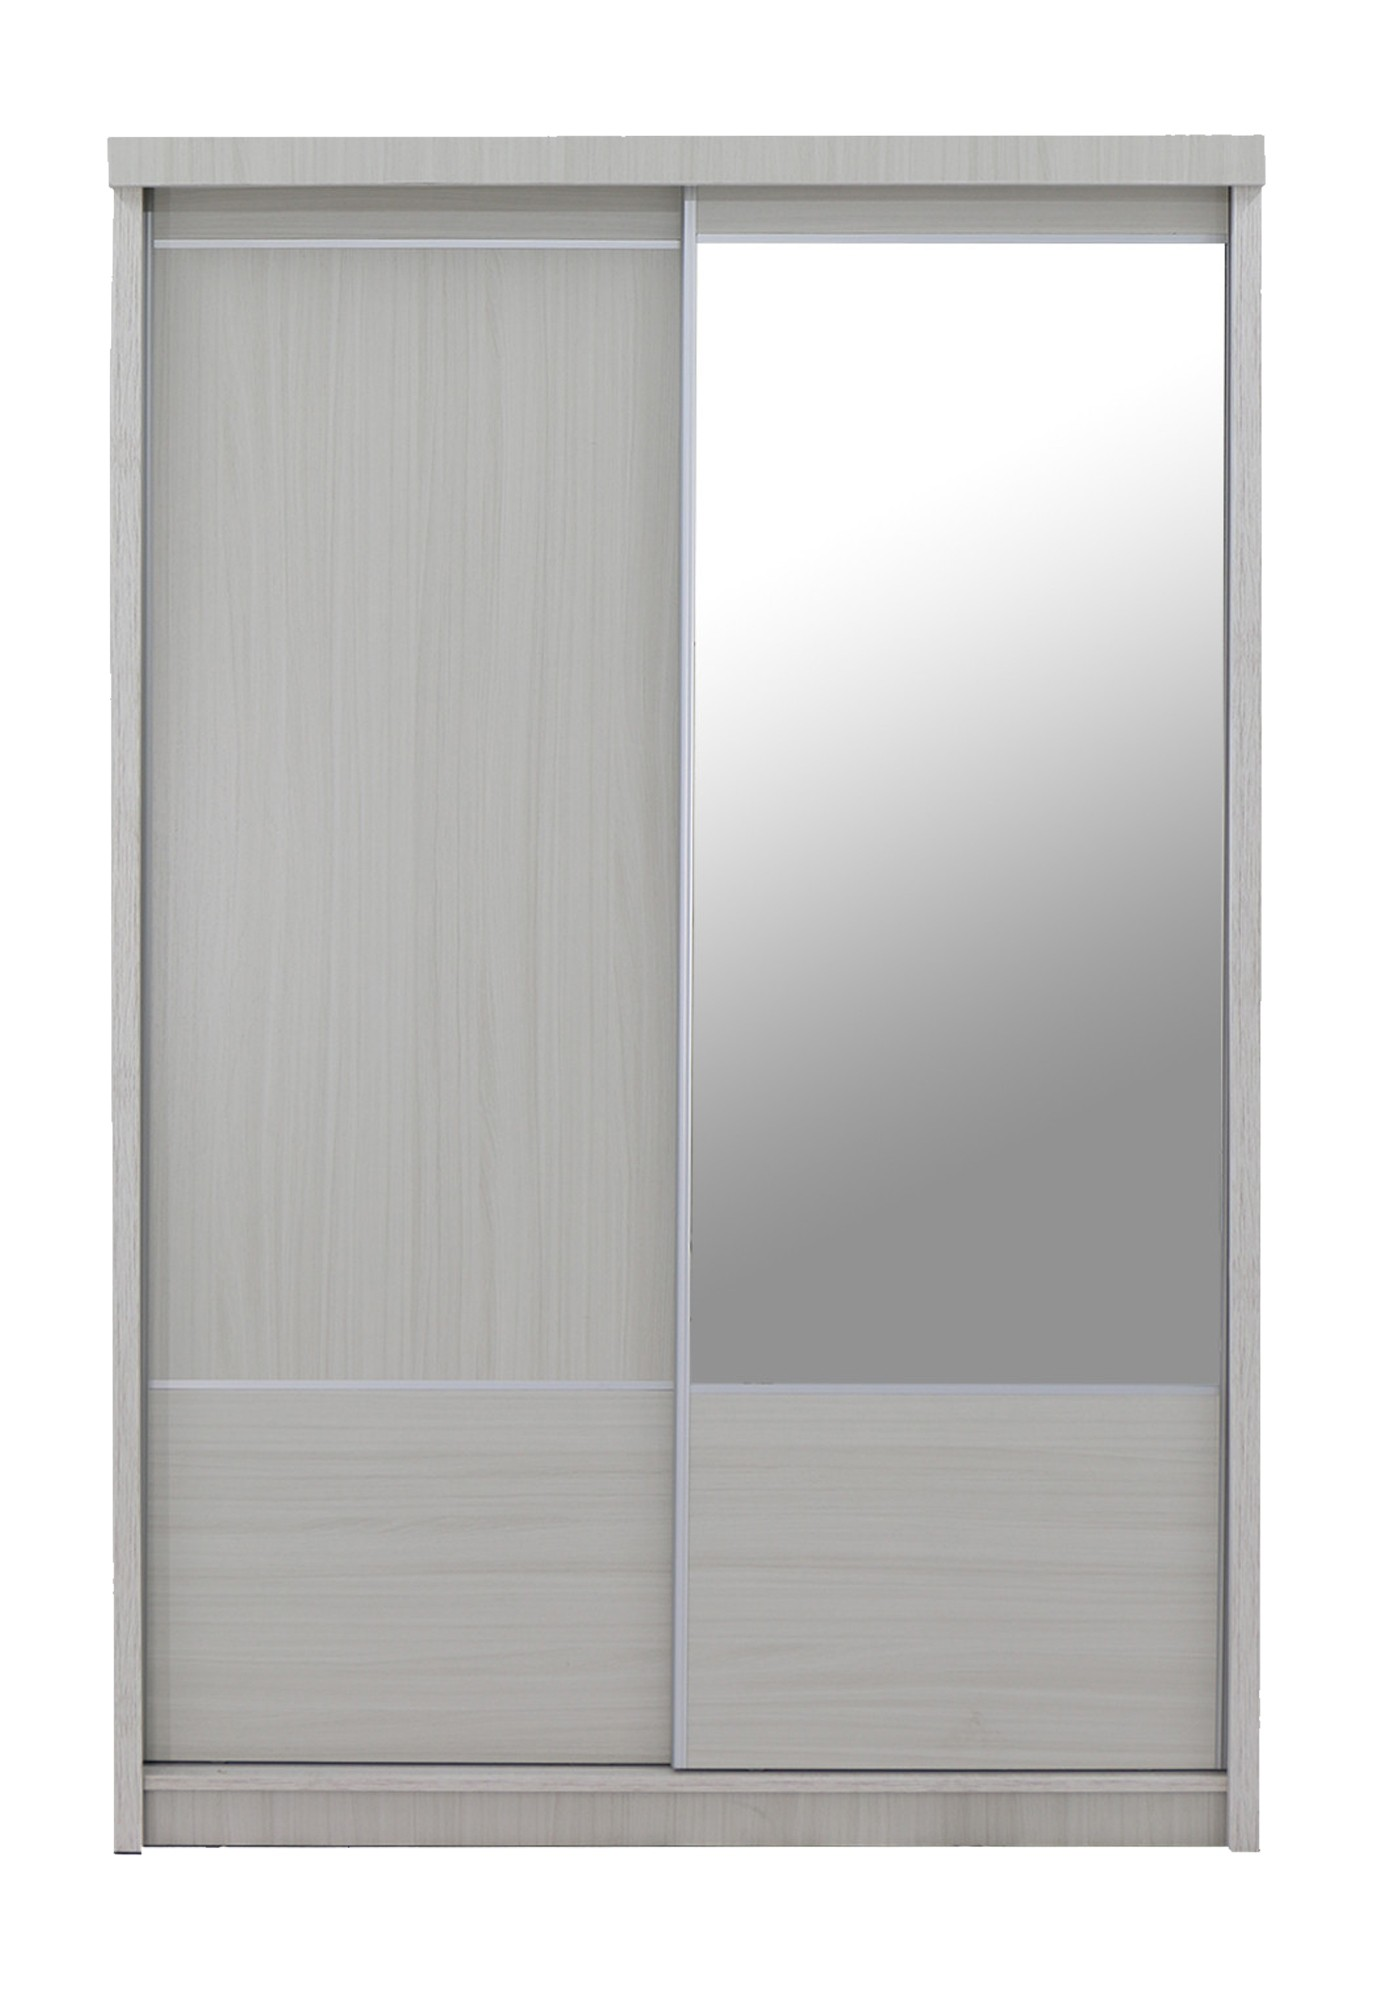 Buy Wardrobes Bedroom Furniture Fortytwo Singapore Furniture